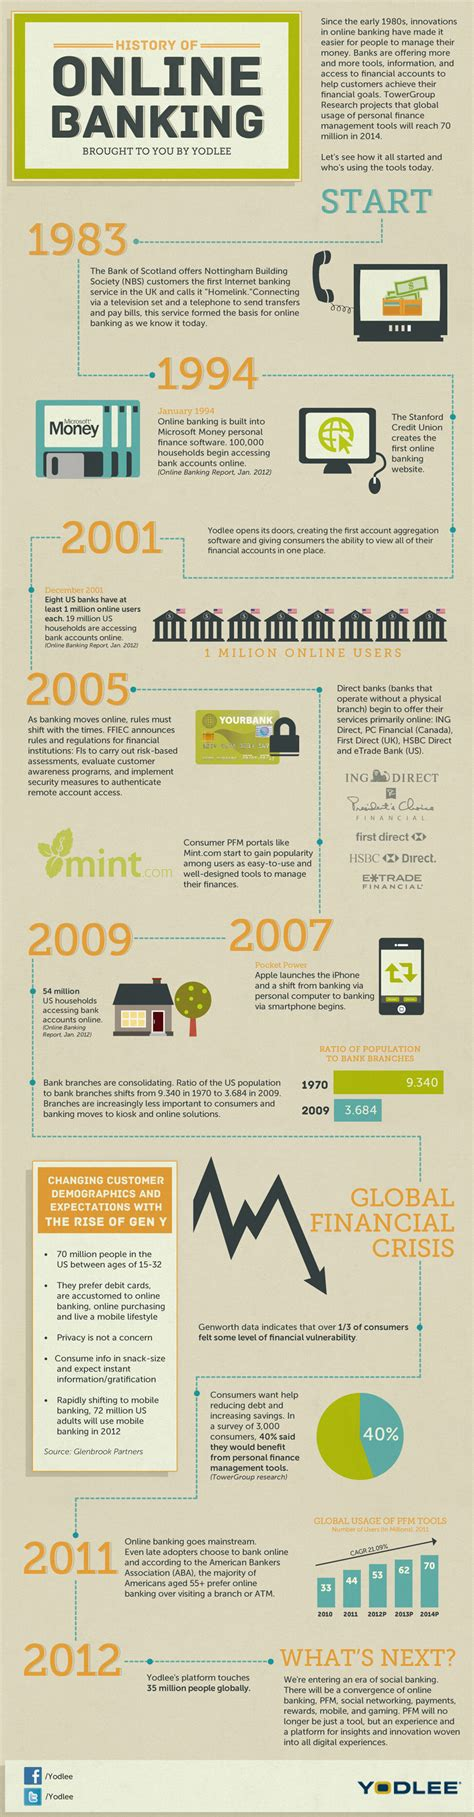 origin of bank history of banking infographic